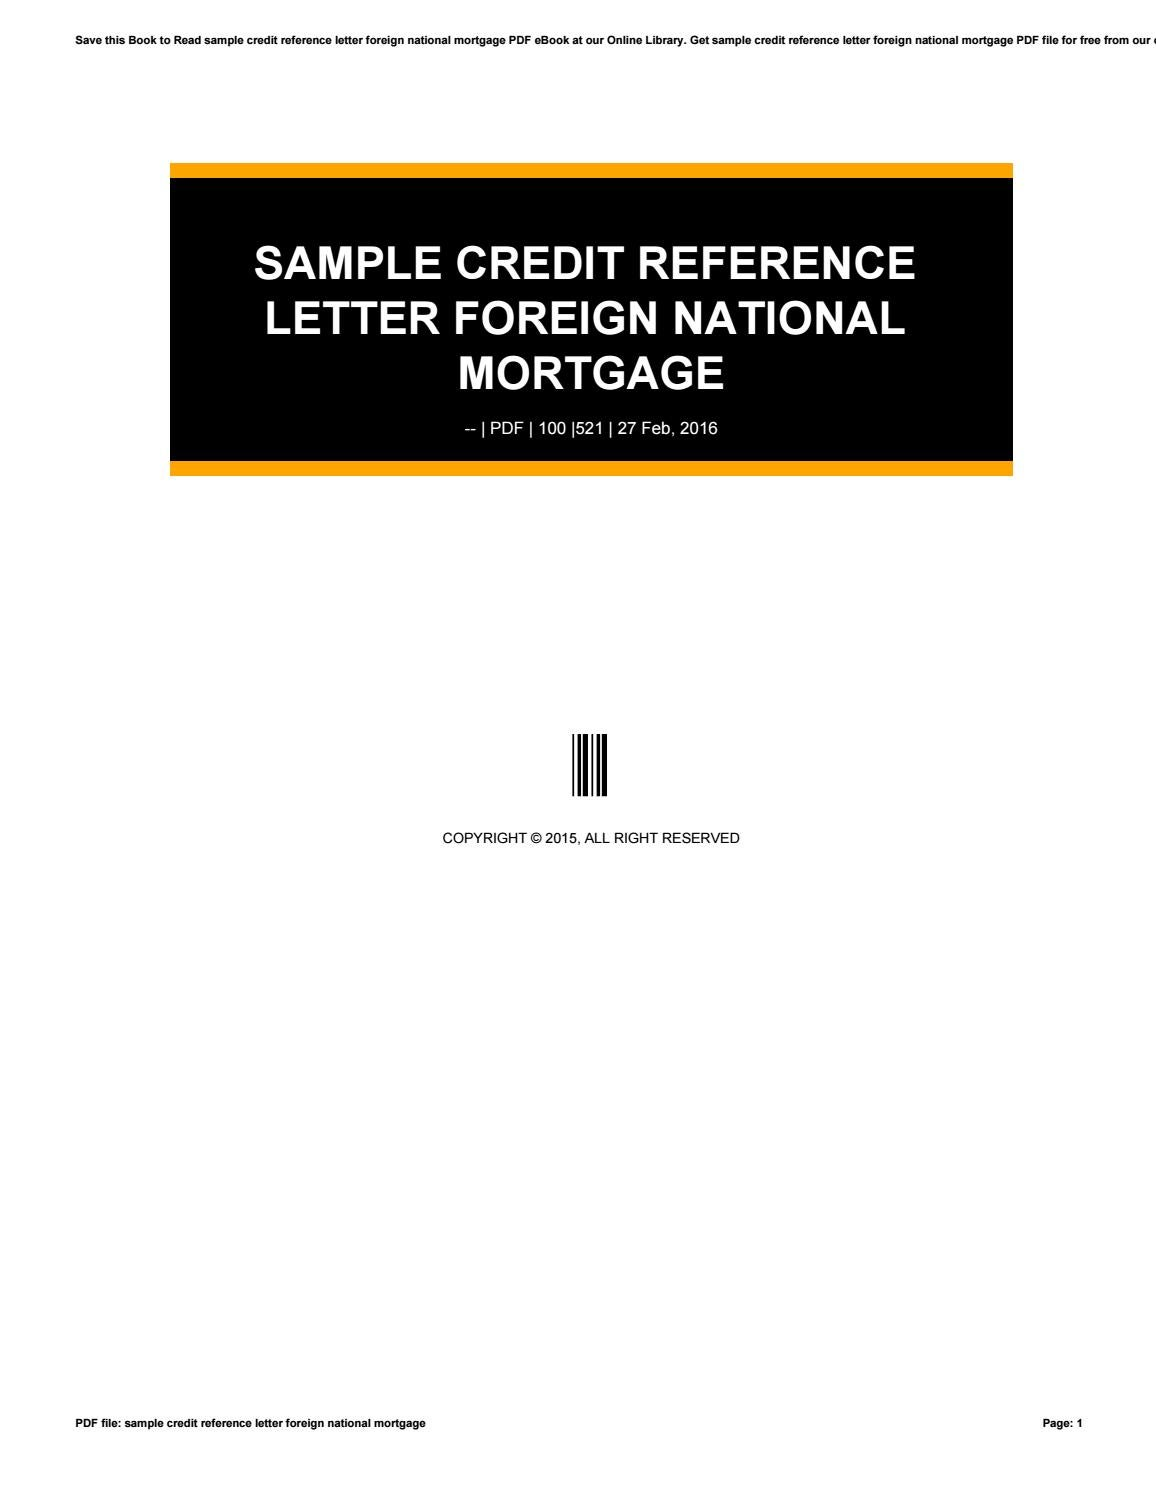 Sample Credit Reference Letter Foreign National Mortgage By Xww45